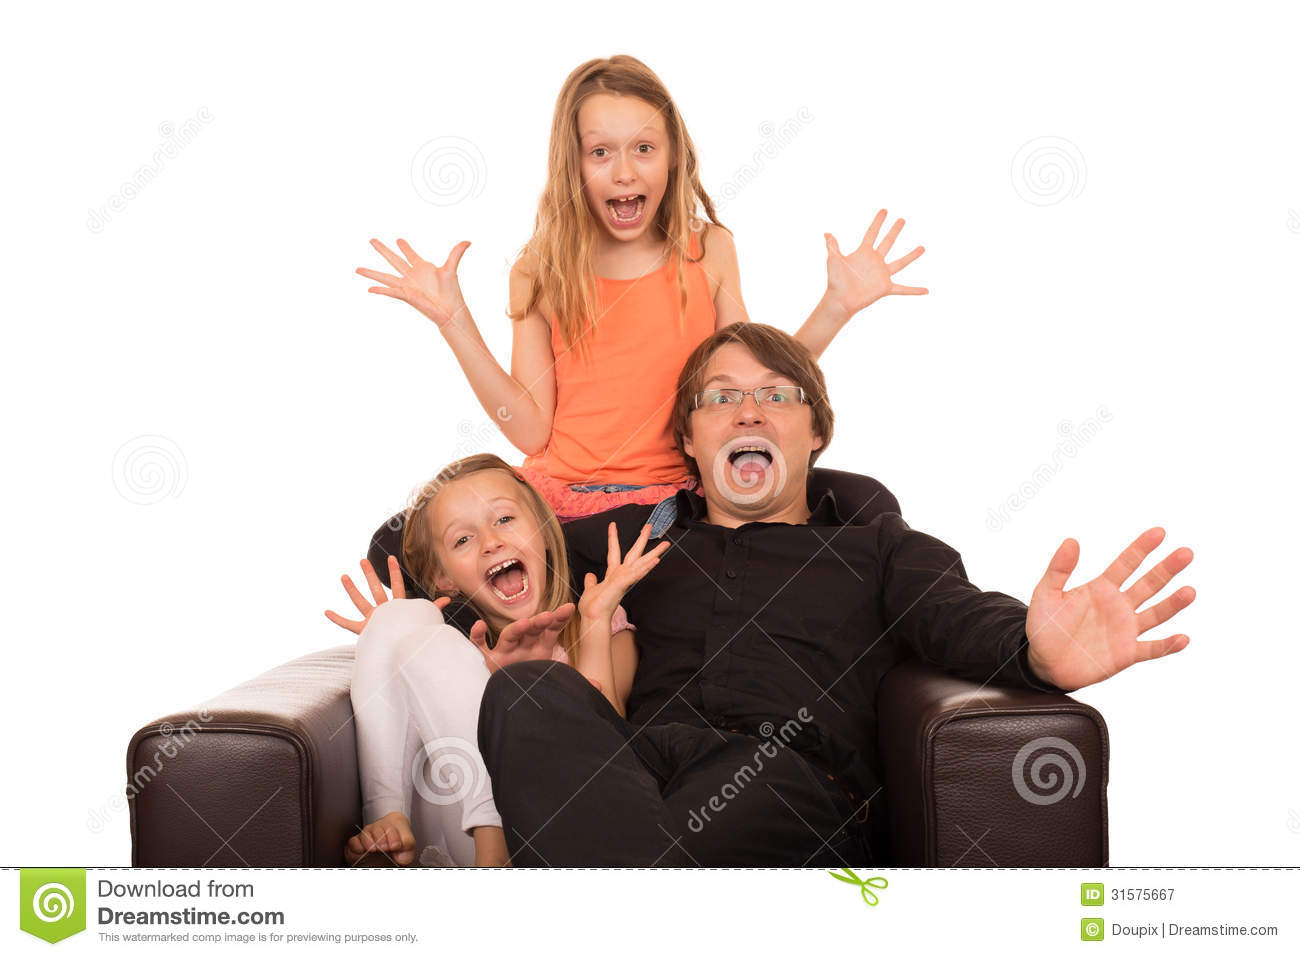 Crazy People Crying And Laughing Stock Image Image Of Female Intimate 31575667